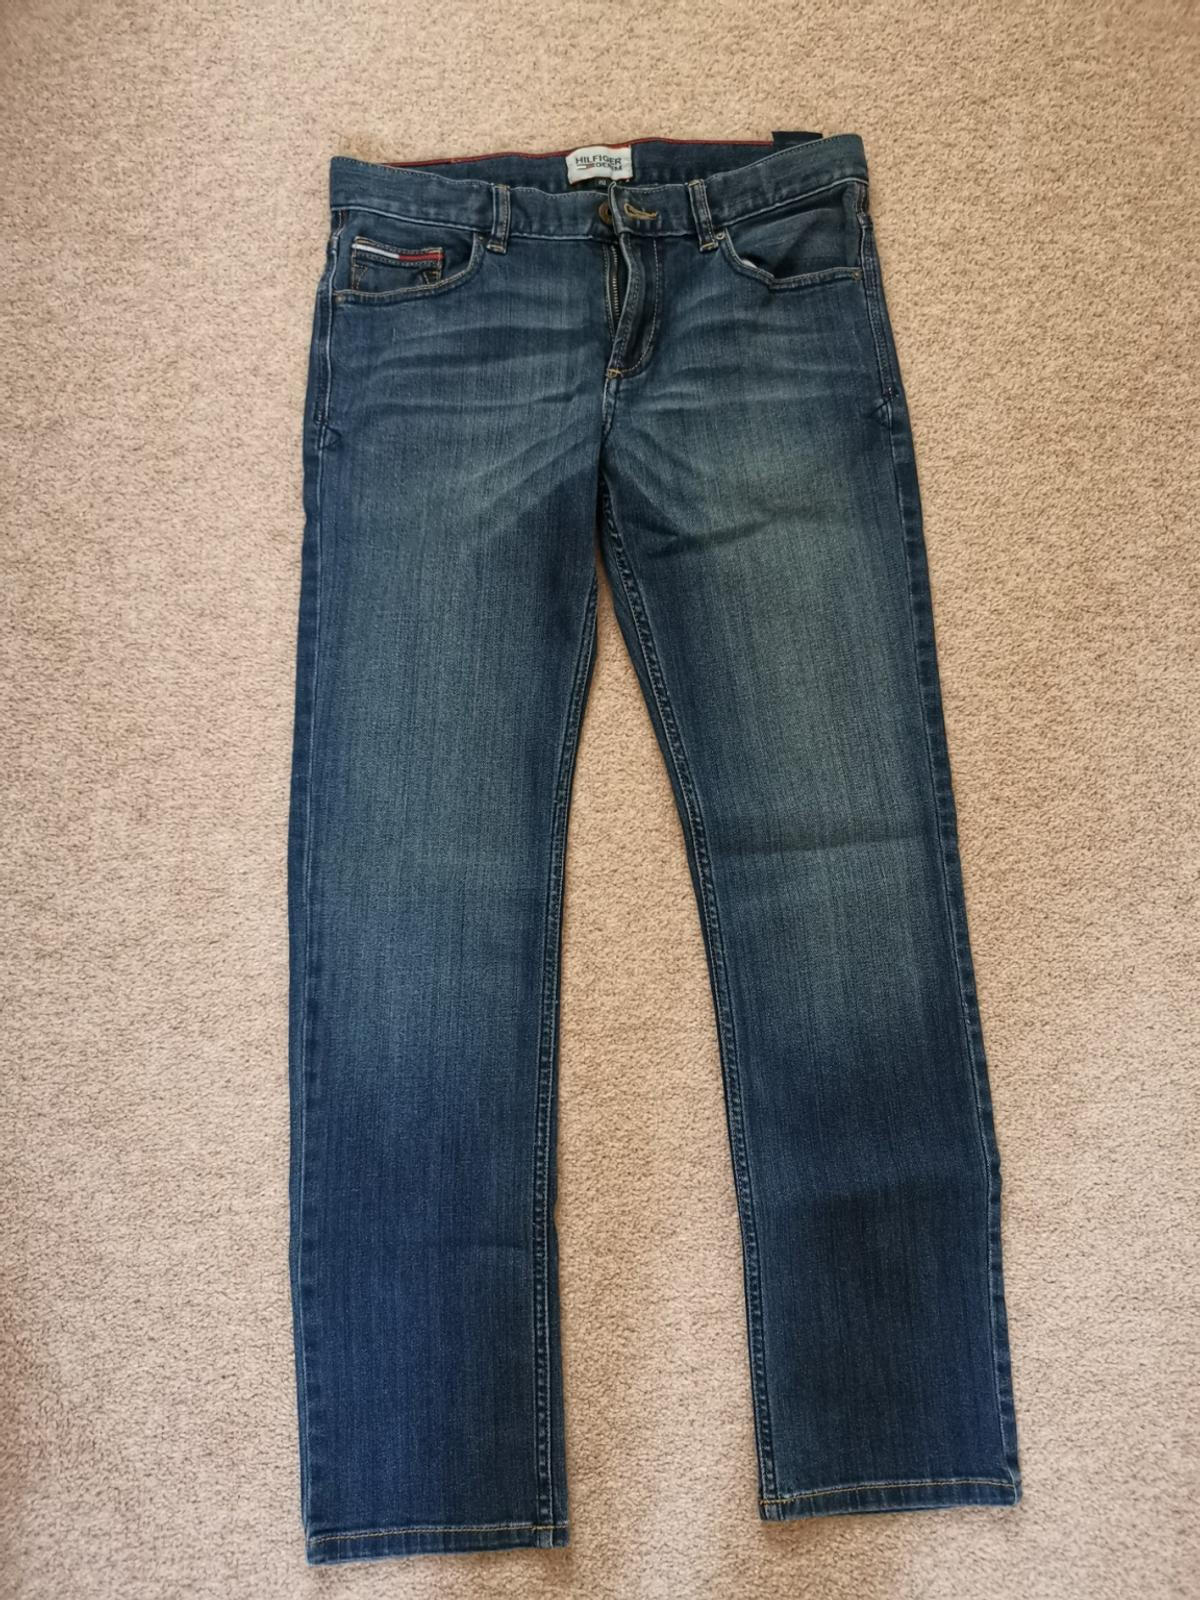 Genuine Tommy Hilfiger denim jeans. Brand new, never worn jeans. Doesn't have the original tags but brand new Size 30W / 30L